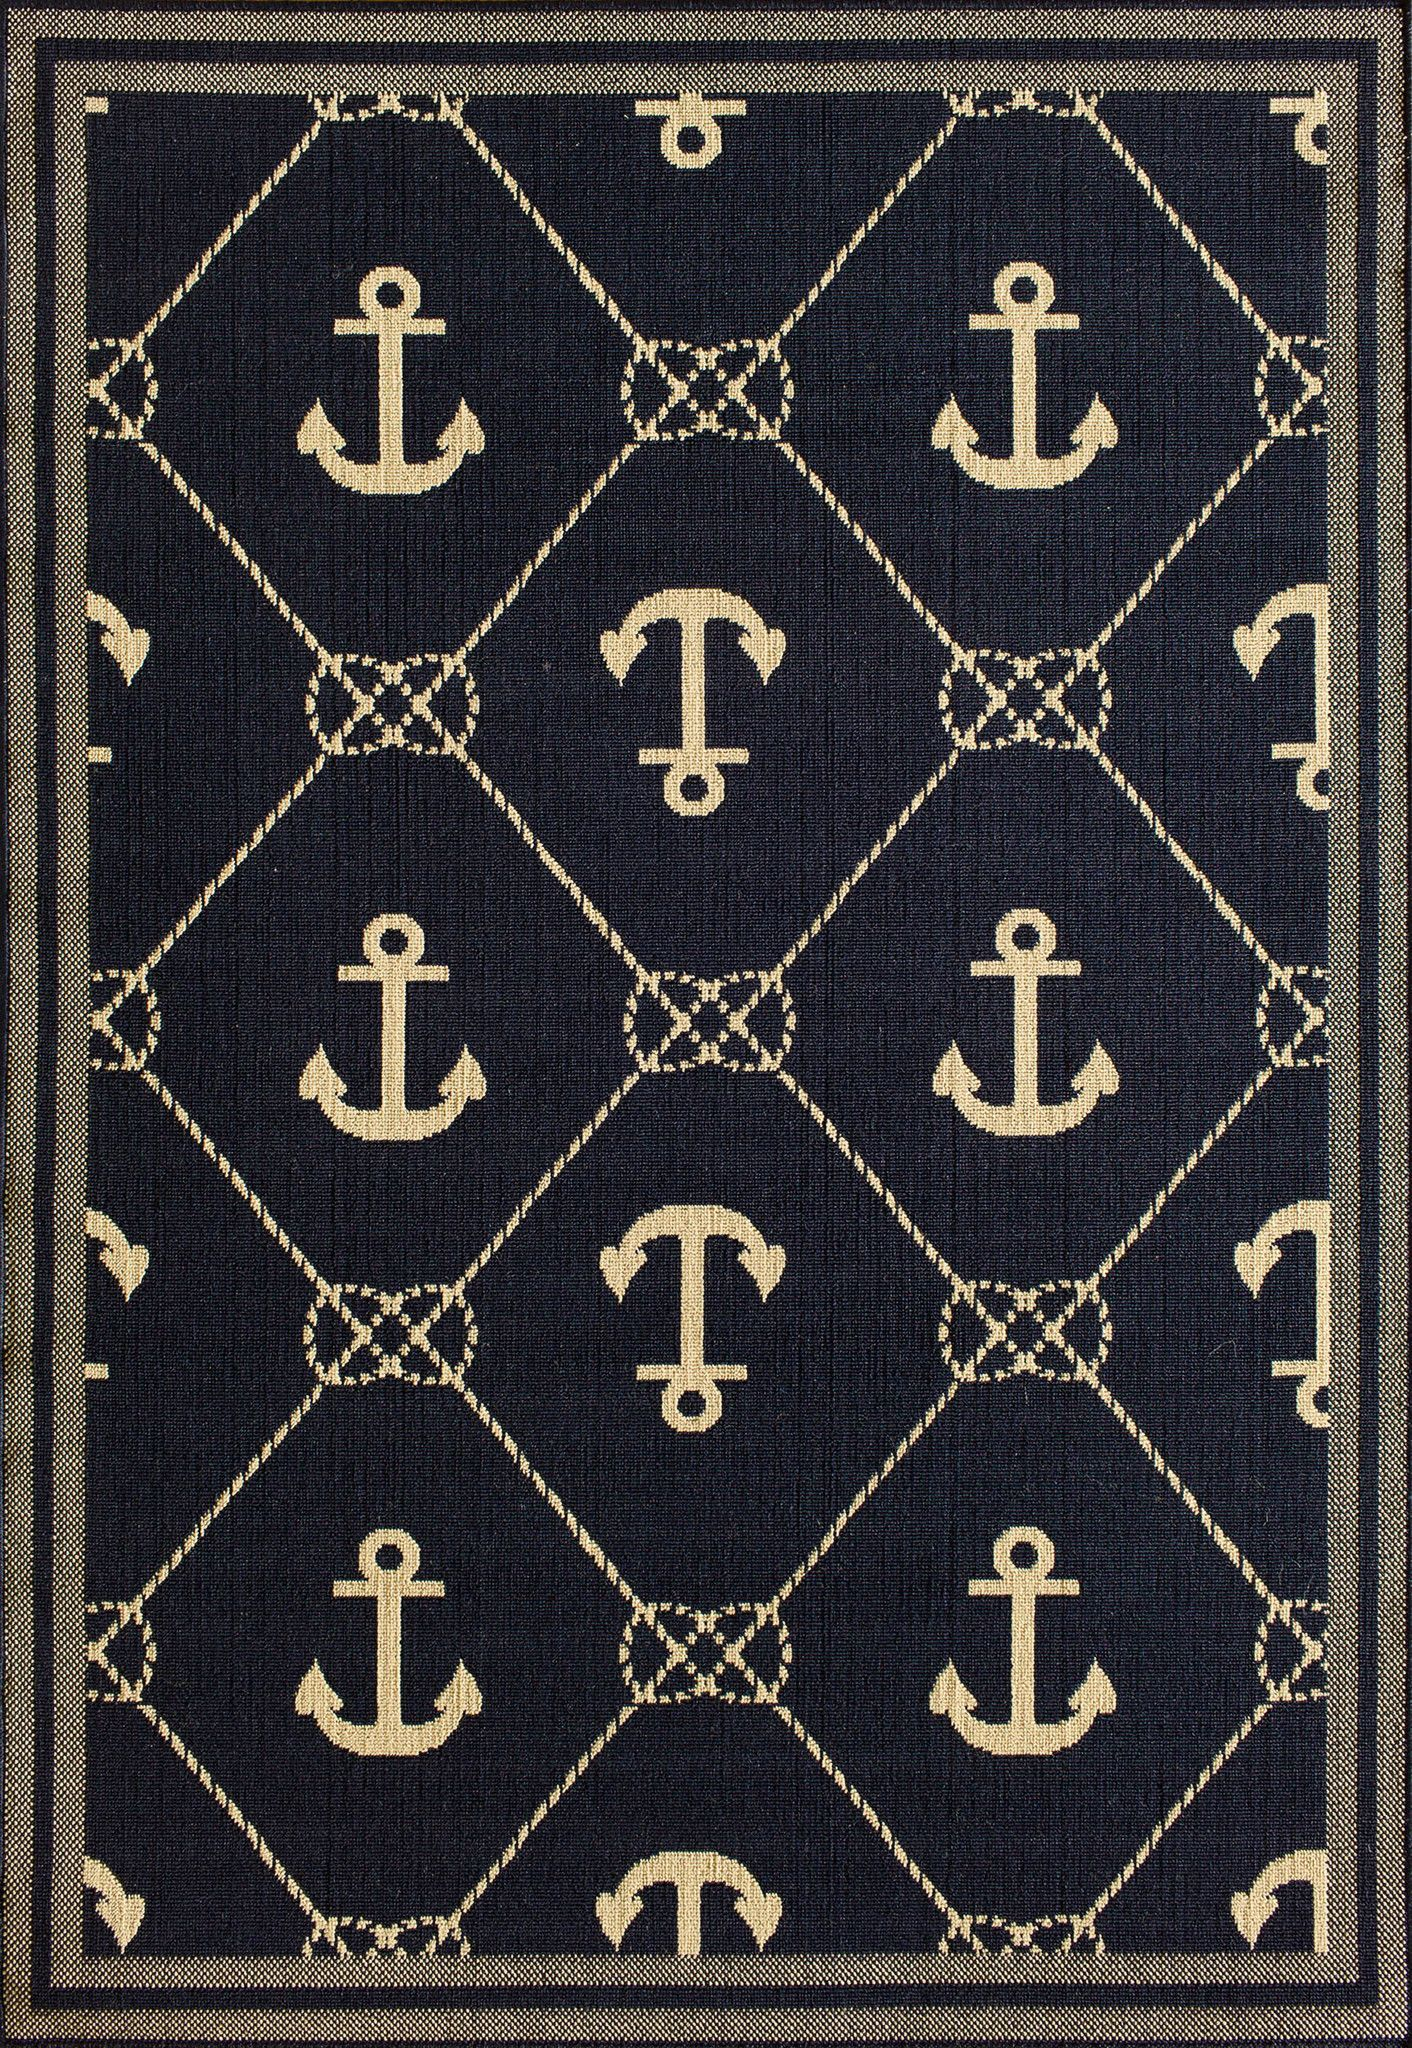 Tributary 6004 42 Tributary Anchor Navy Ivory Rug In 2018 Texure